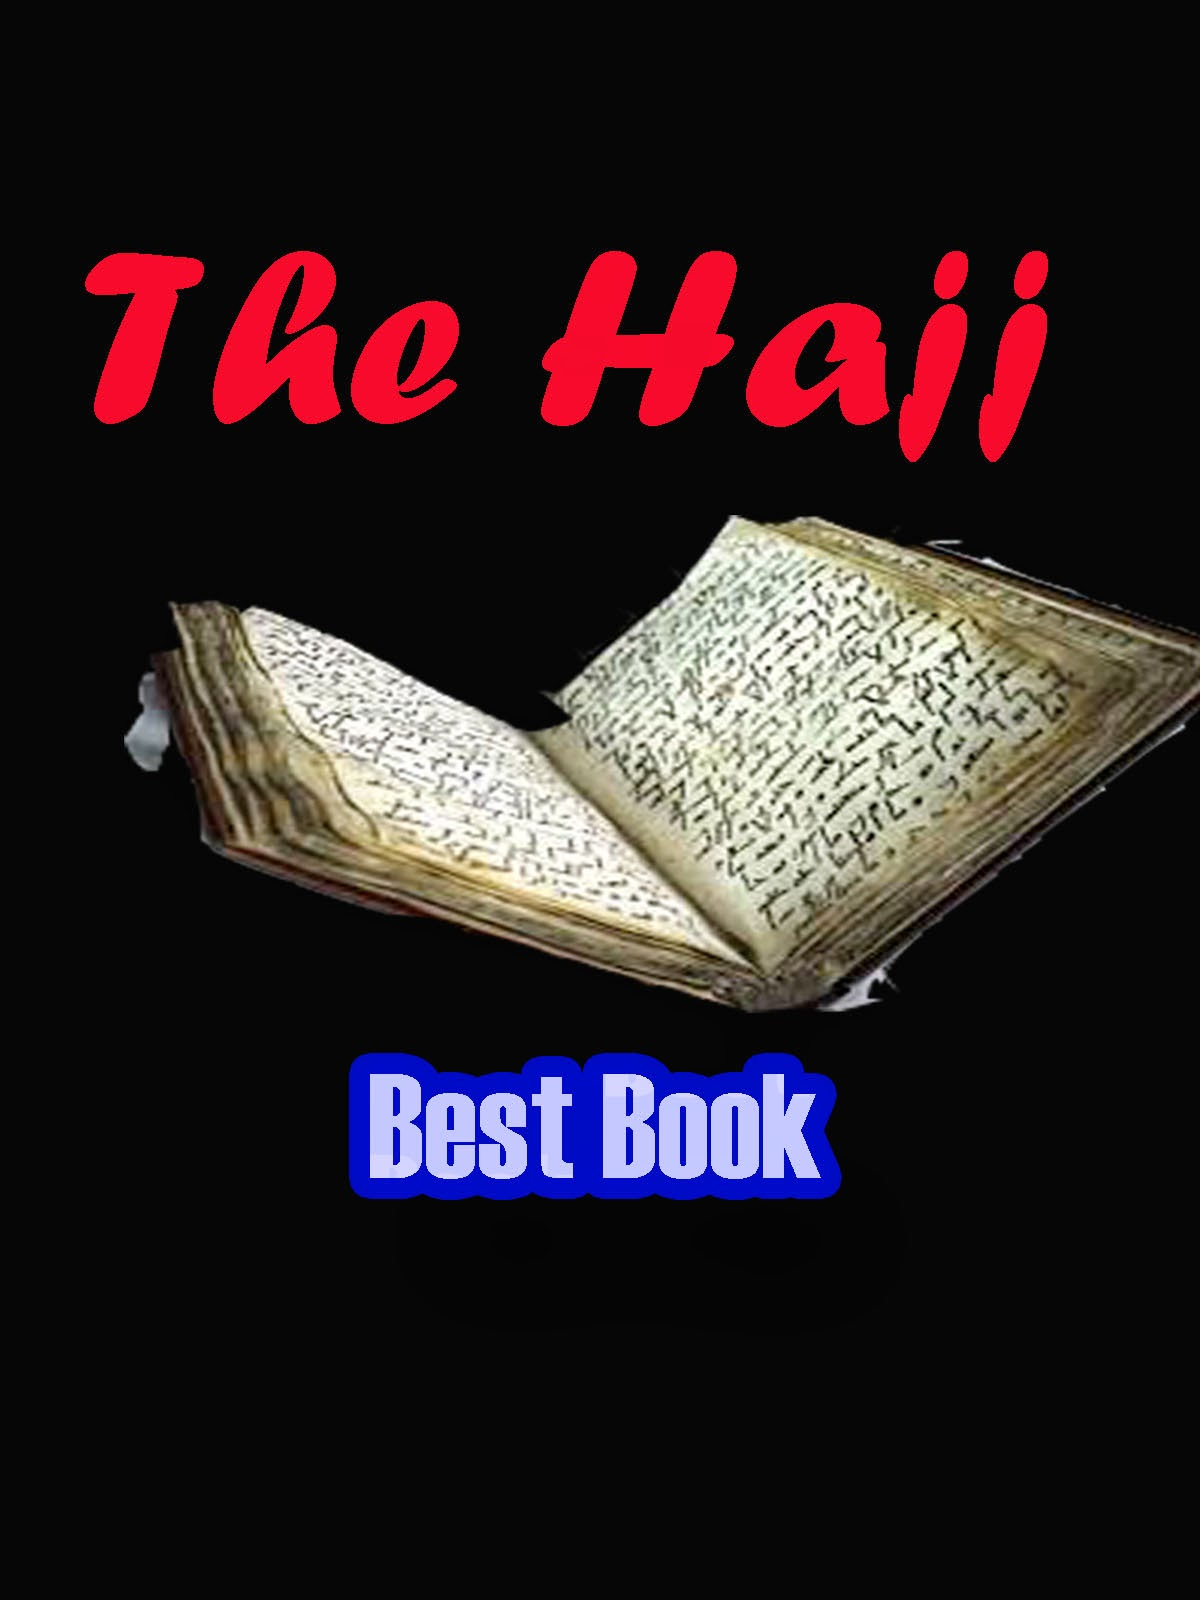 https://ia902706.us.archive.org/15/items/the_hajj/the_hajj.pdf